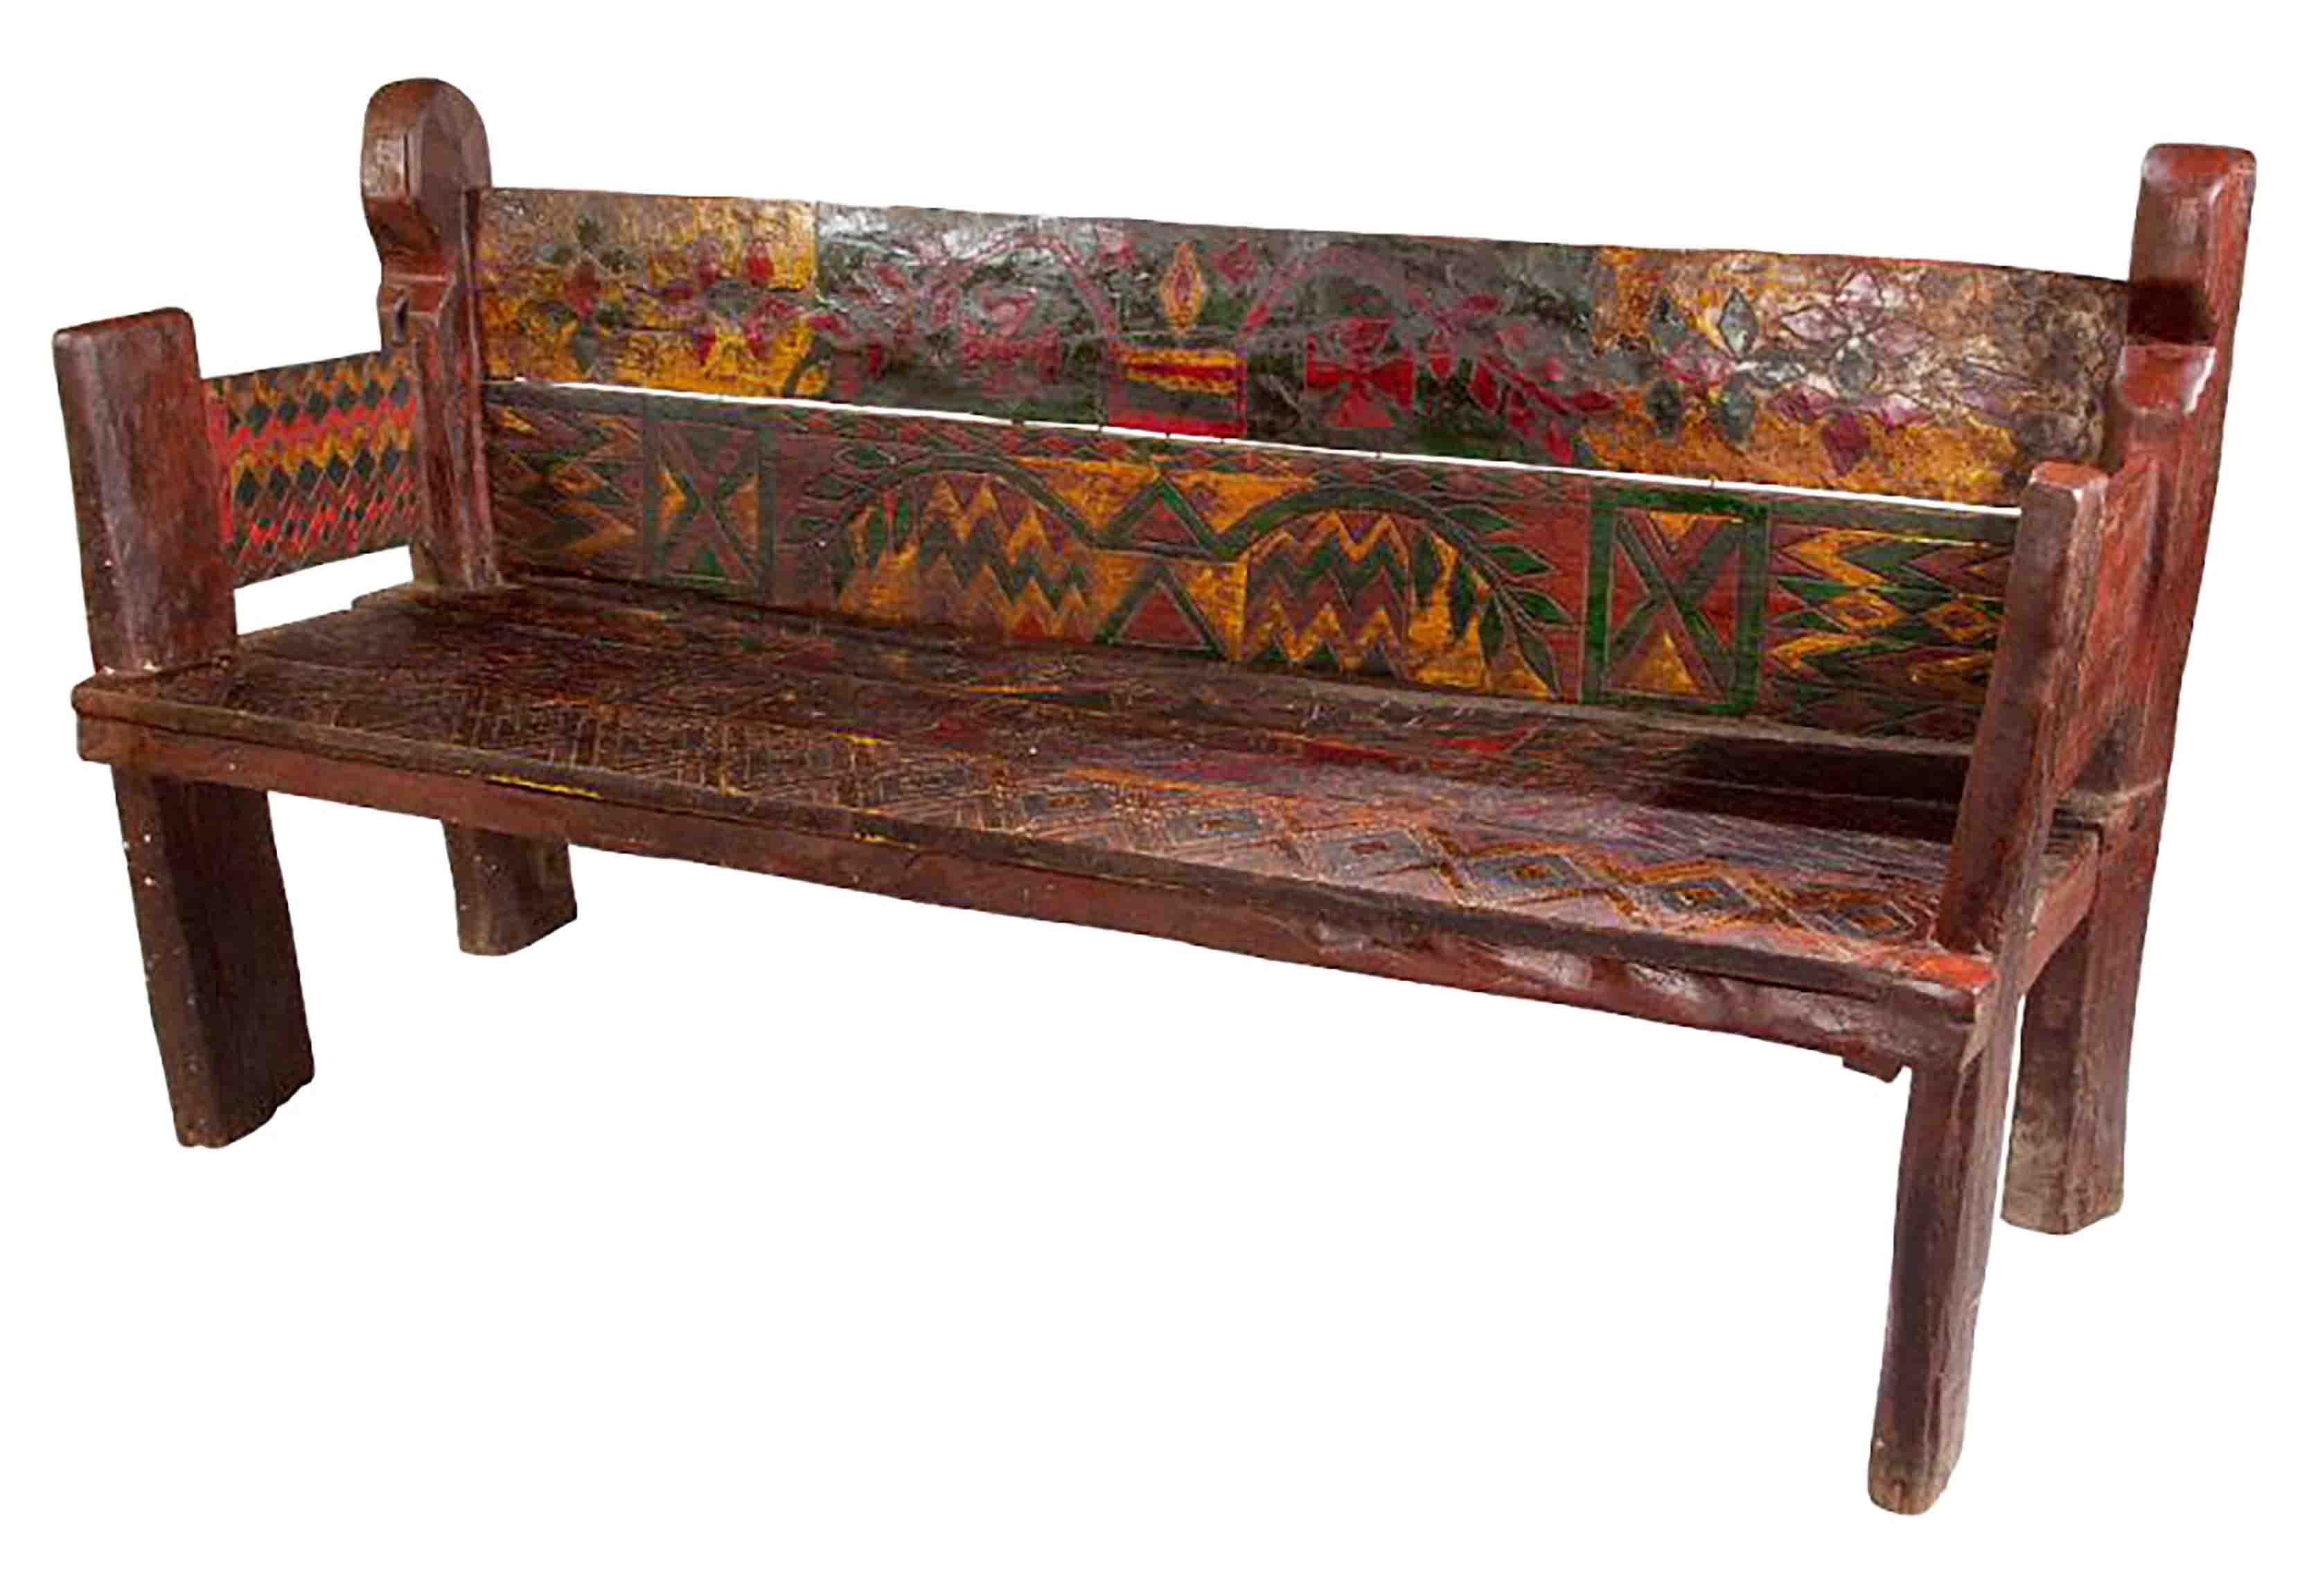 Painted Bench, Ethiopia